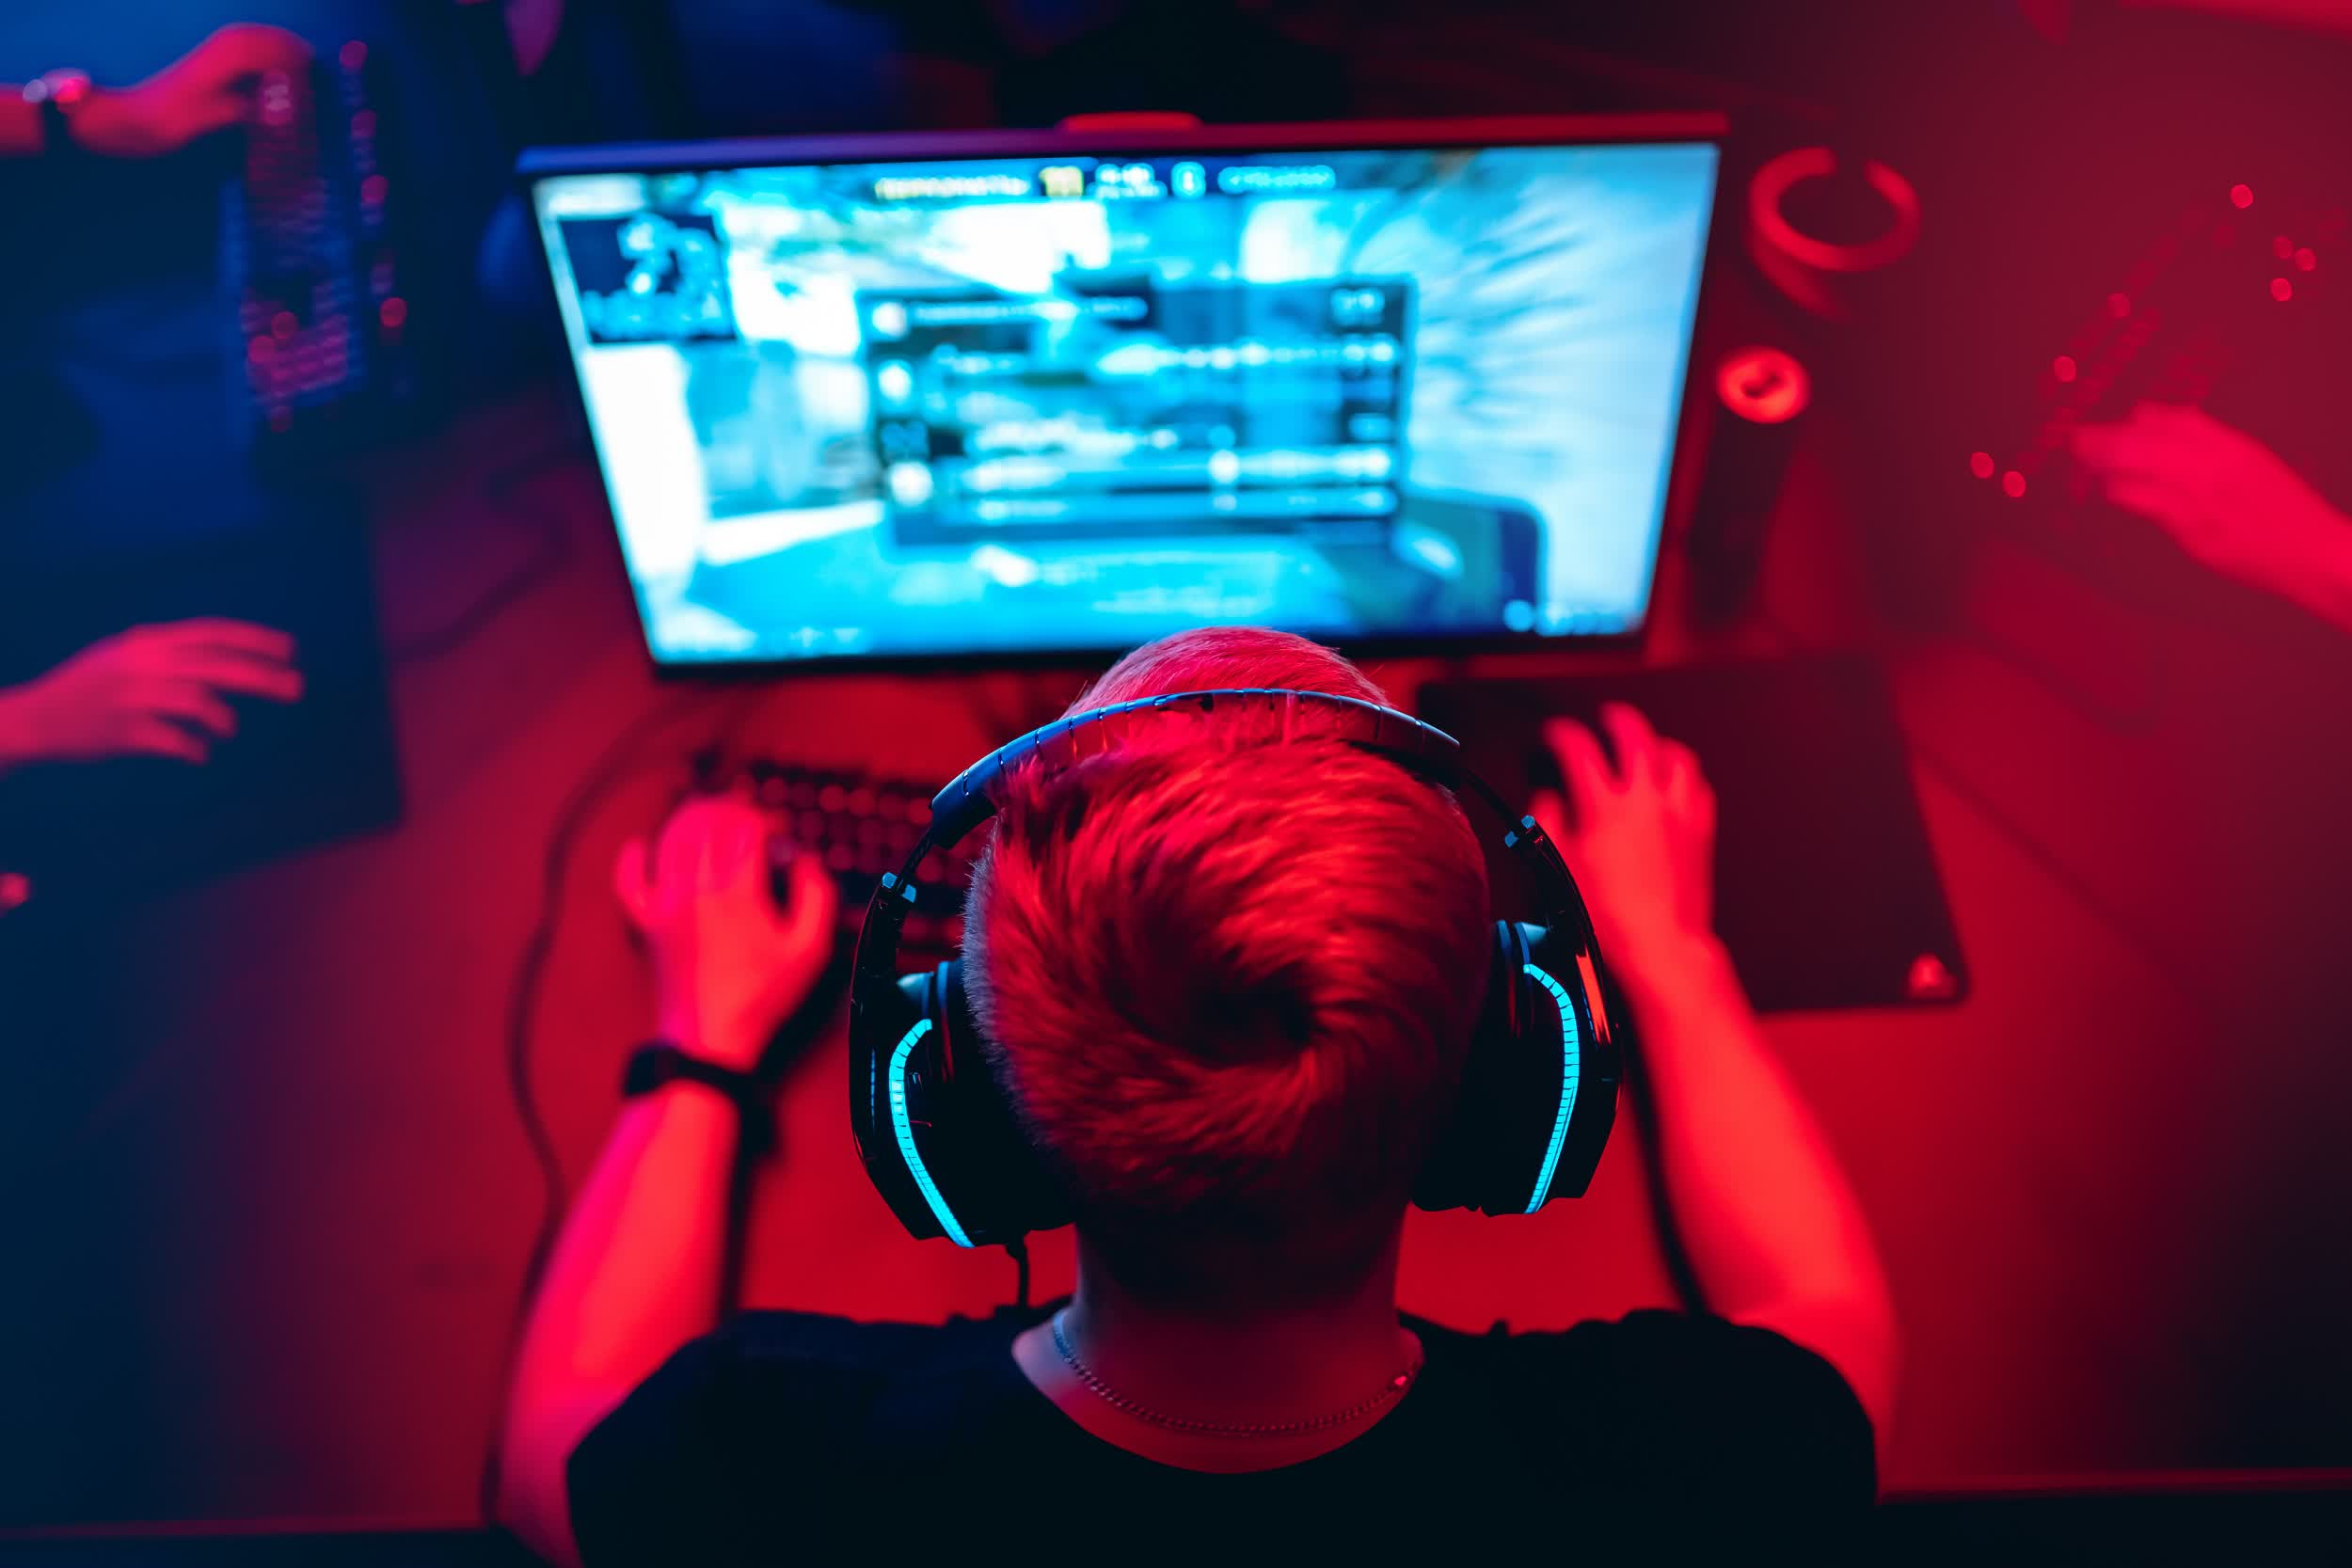 Gamers watched 7.46 billion hours of livestreamed content in the third quarter alone